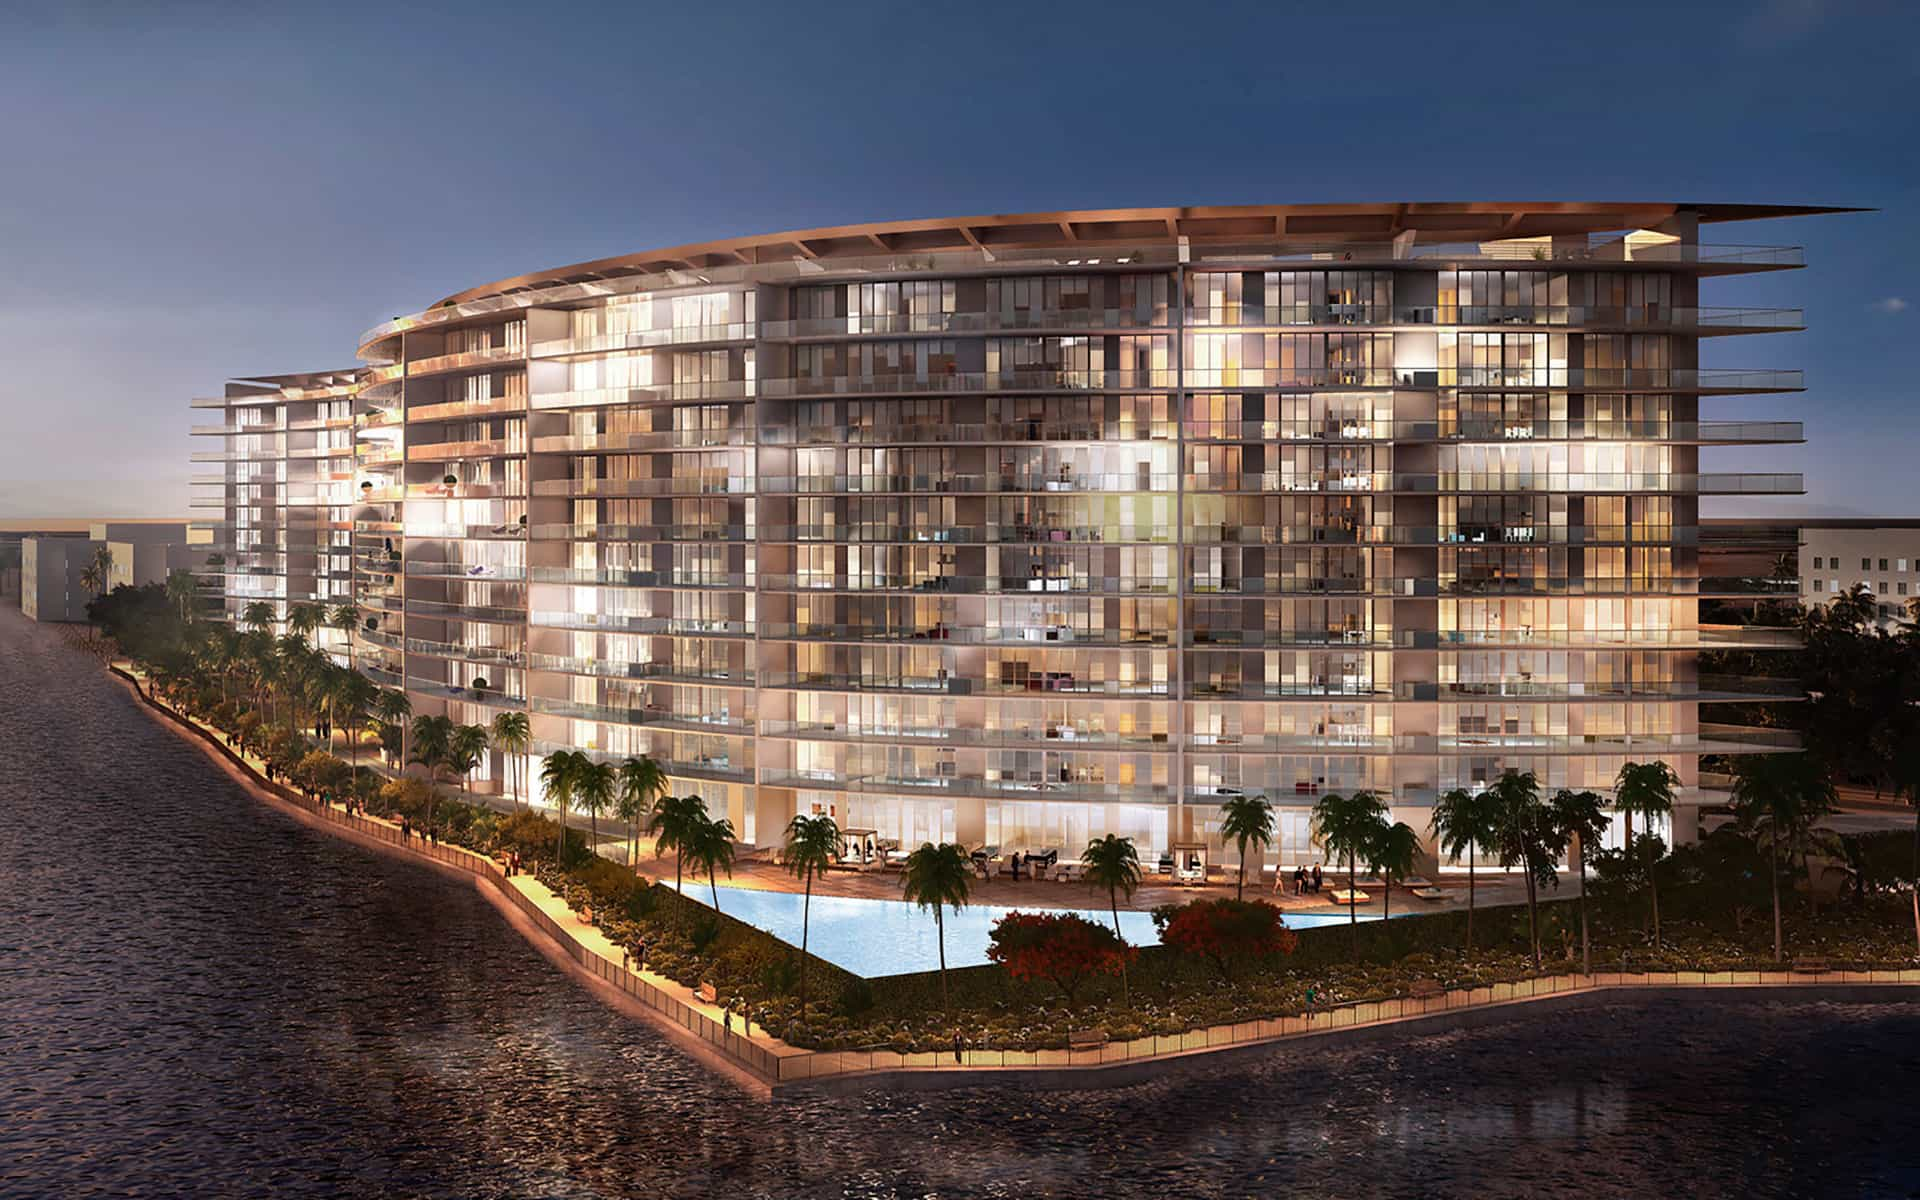 5 Luxurious Residential Projects from Miami where You Could move in